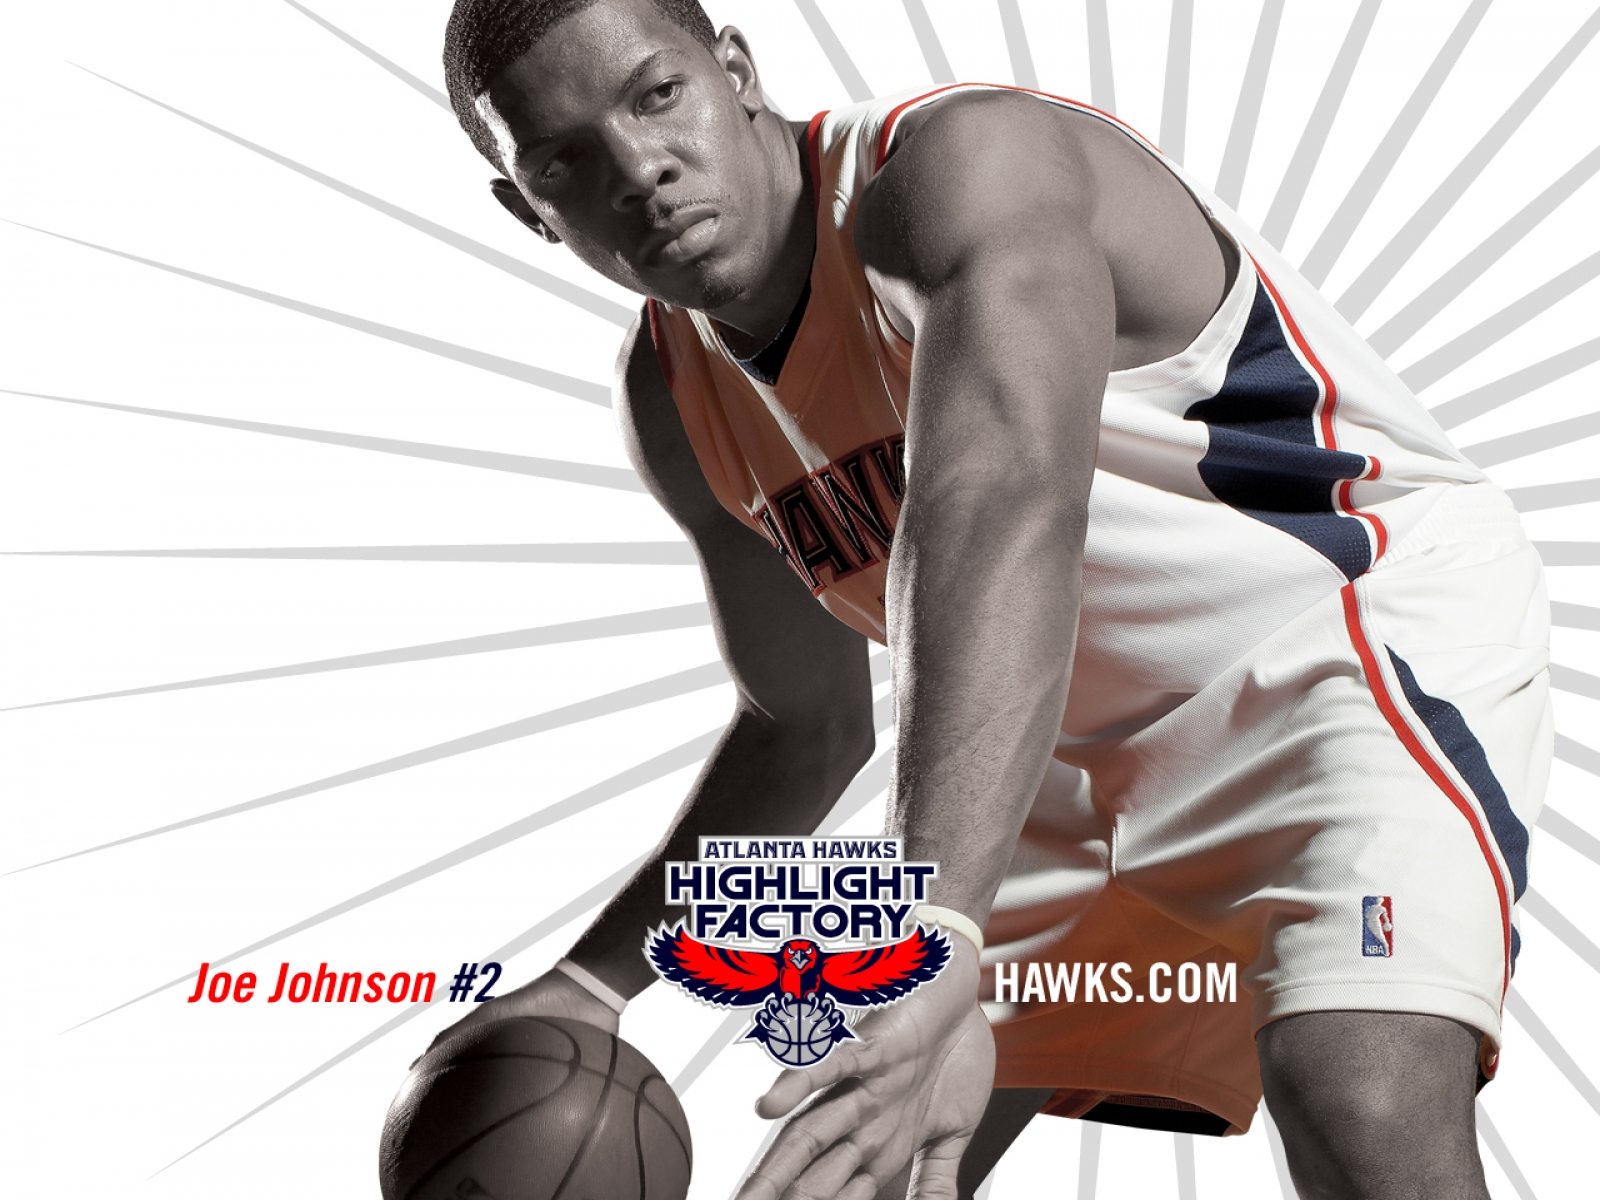 joe johnson hawks photo 1600x1200